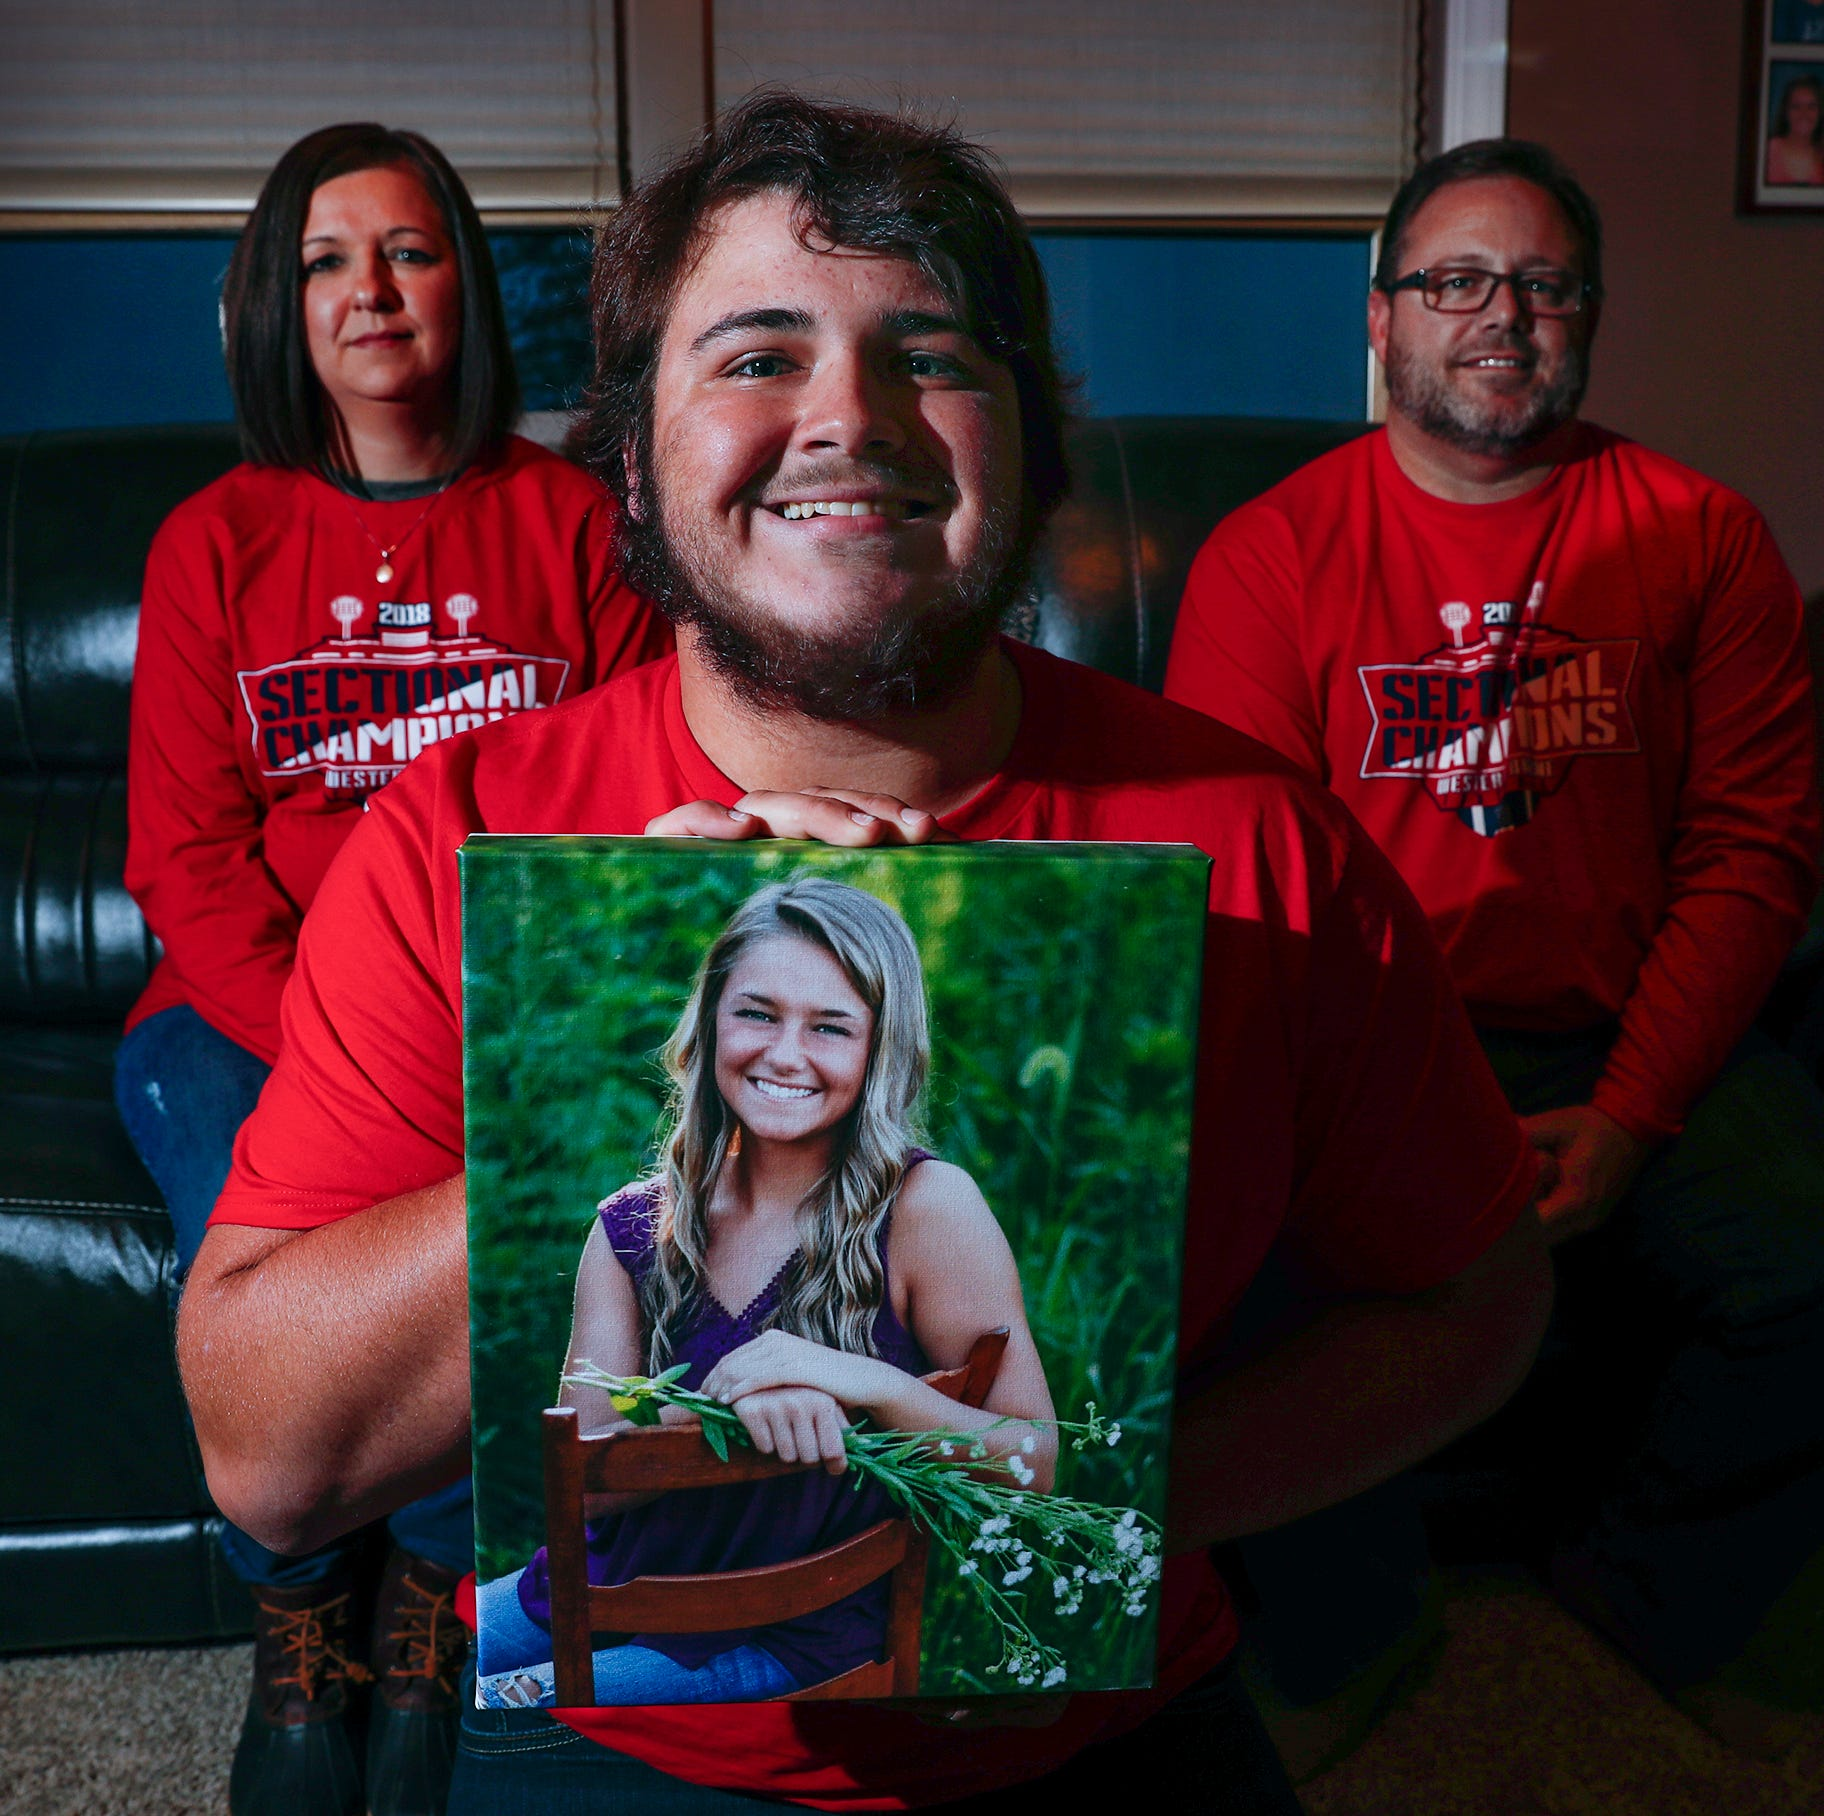 Casey Foster, a Western Boone football player, holds a photo of his sister Sydney, who died in a car accident in March, as his parents Phil and Kristi look on in their home in Jamestown, IN. on Wednesday, Nov. 14, 2018.